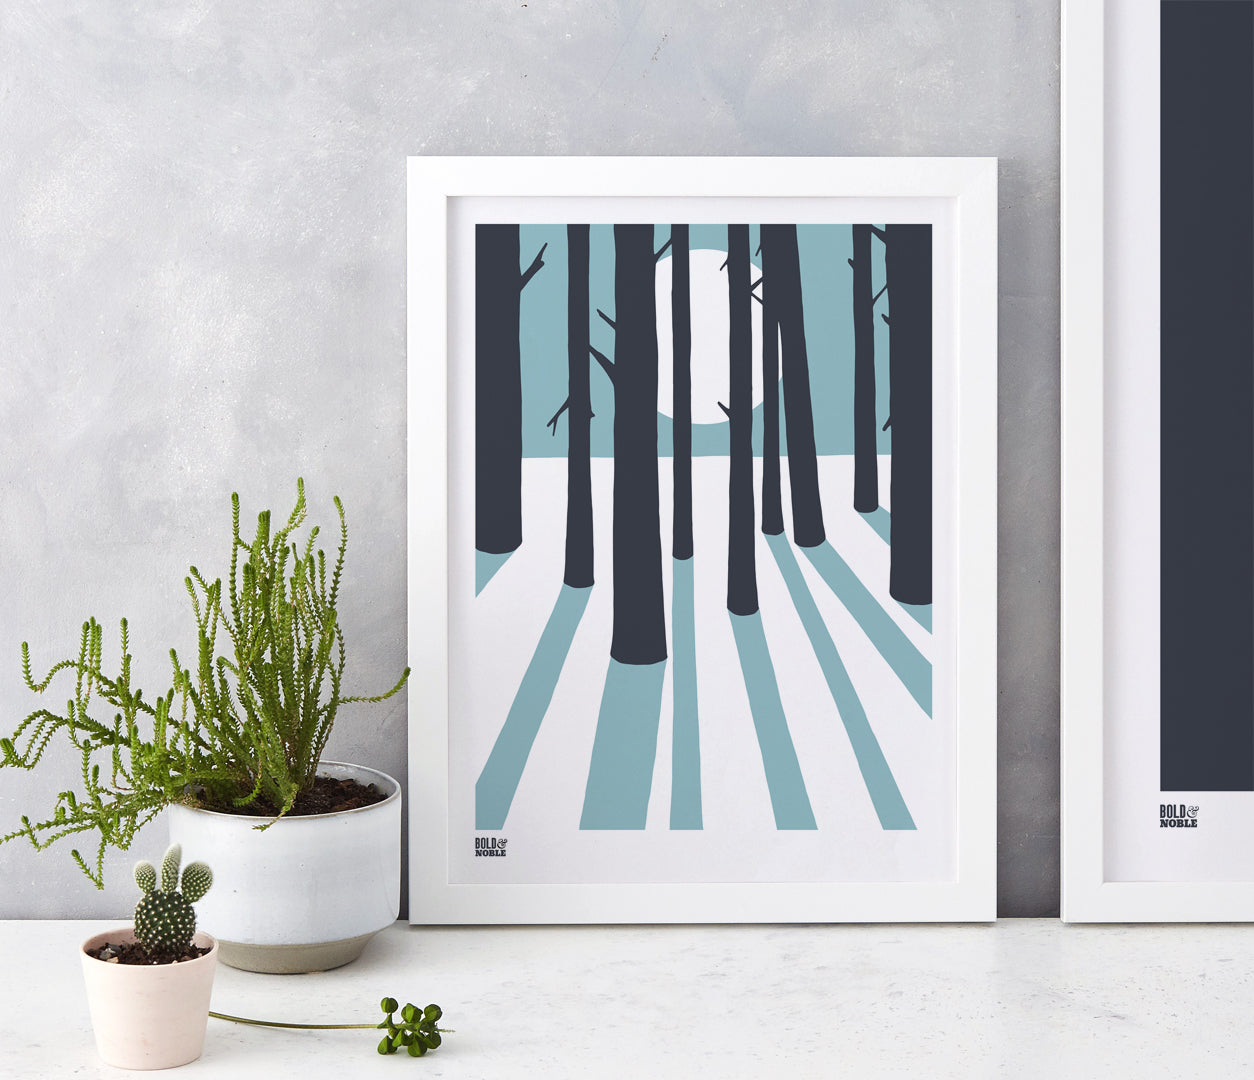 Wall Art ideas: Economical Screen Prints, In the Woods screen print in Coastal Blue